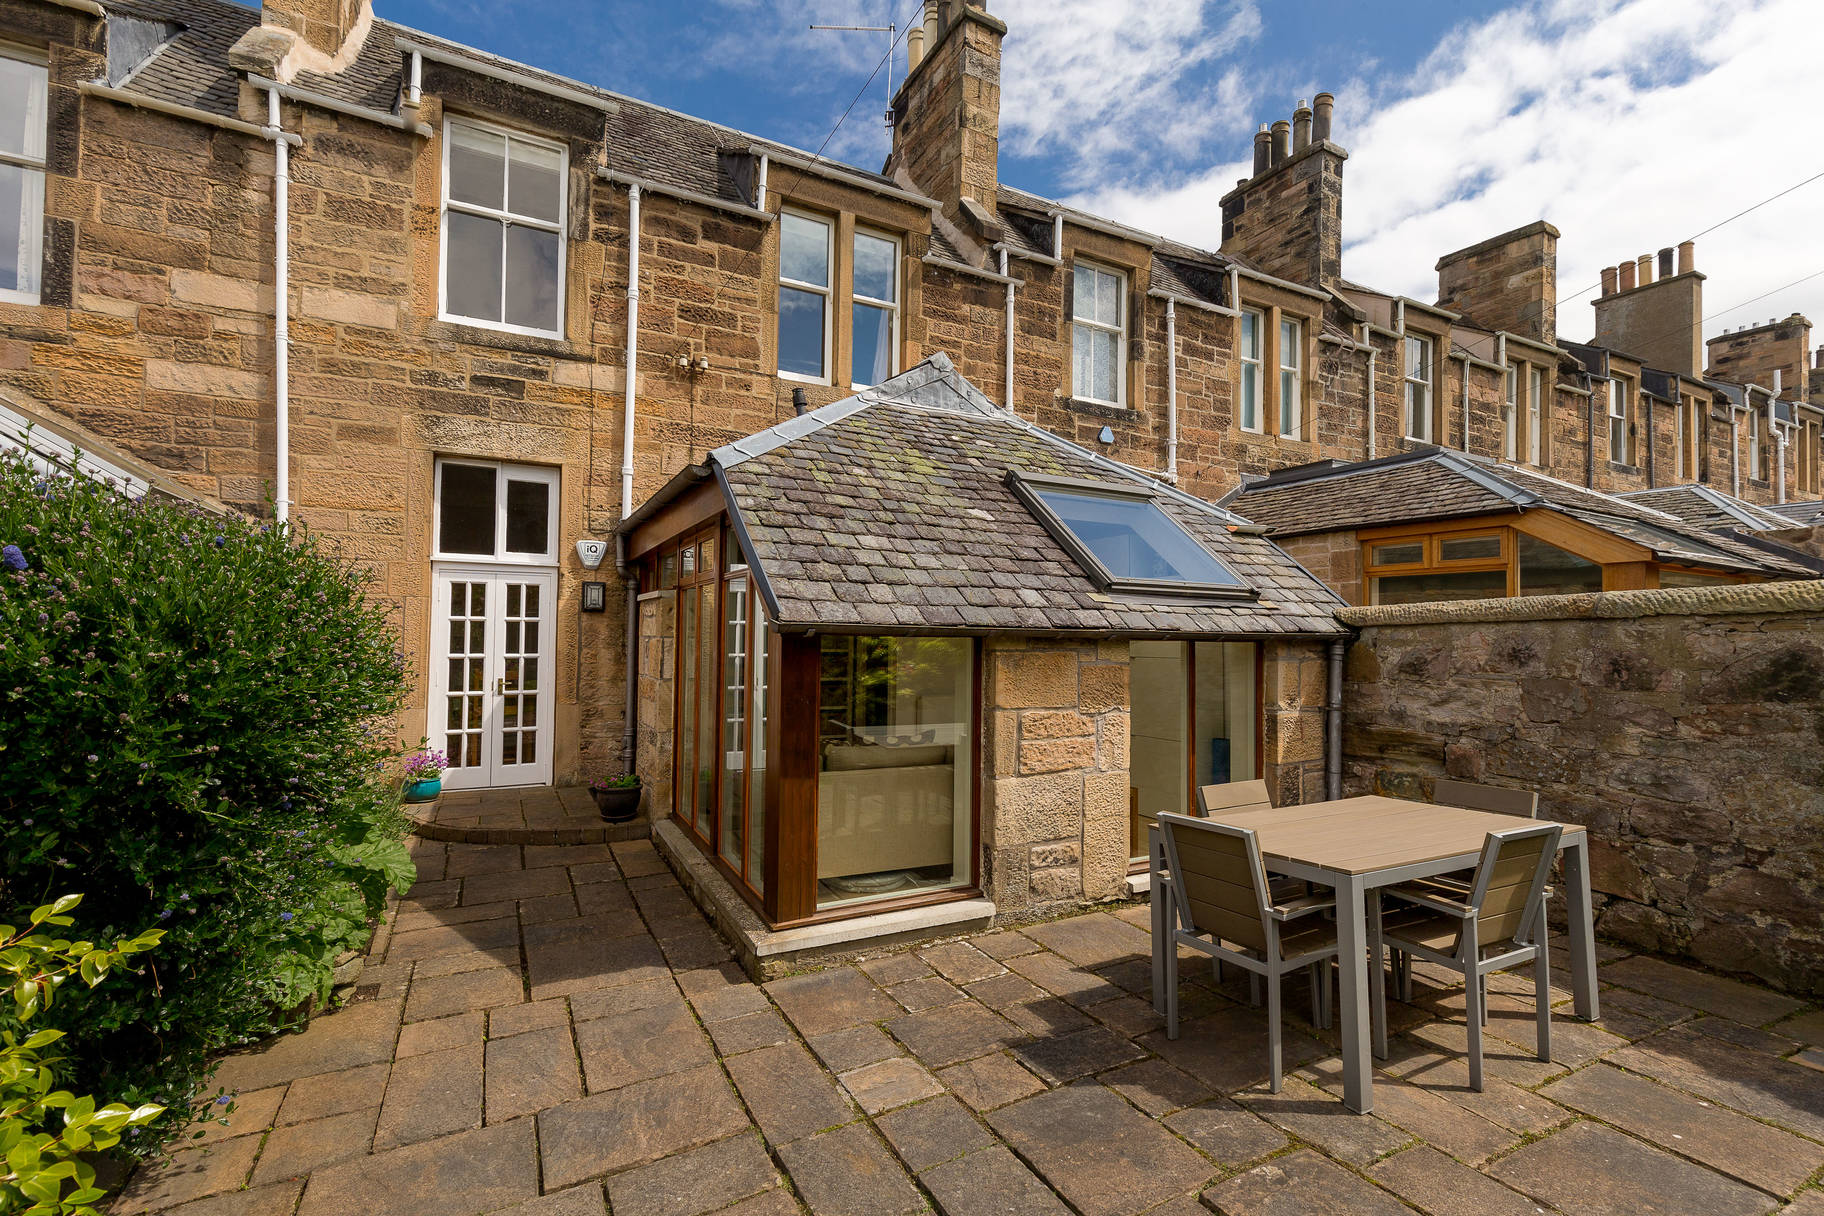 5 Ethel Terrace, Morningside, Edinburgh, EH10 5NB